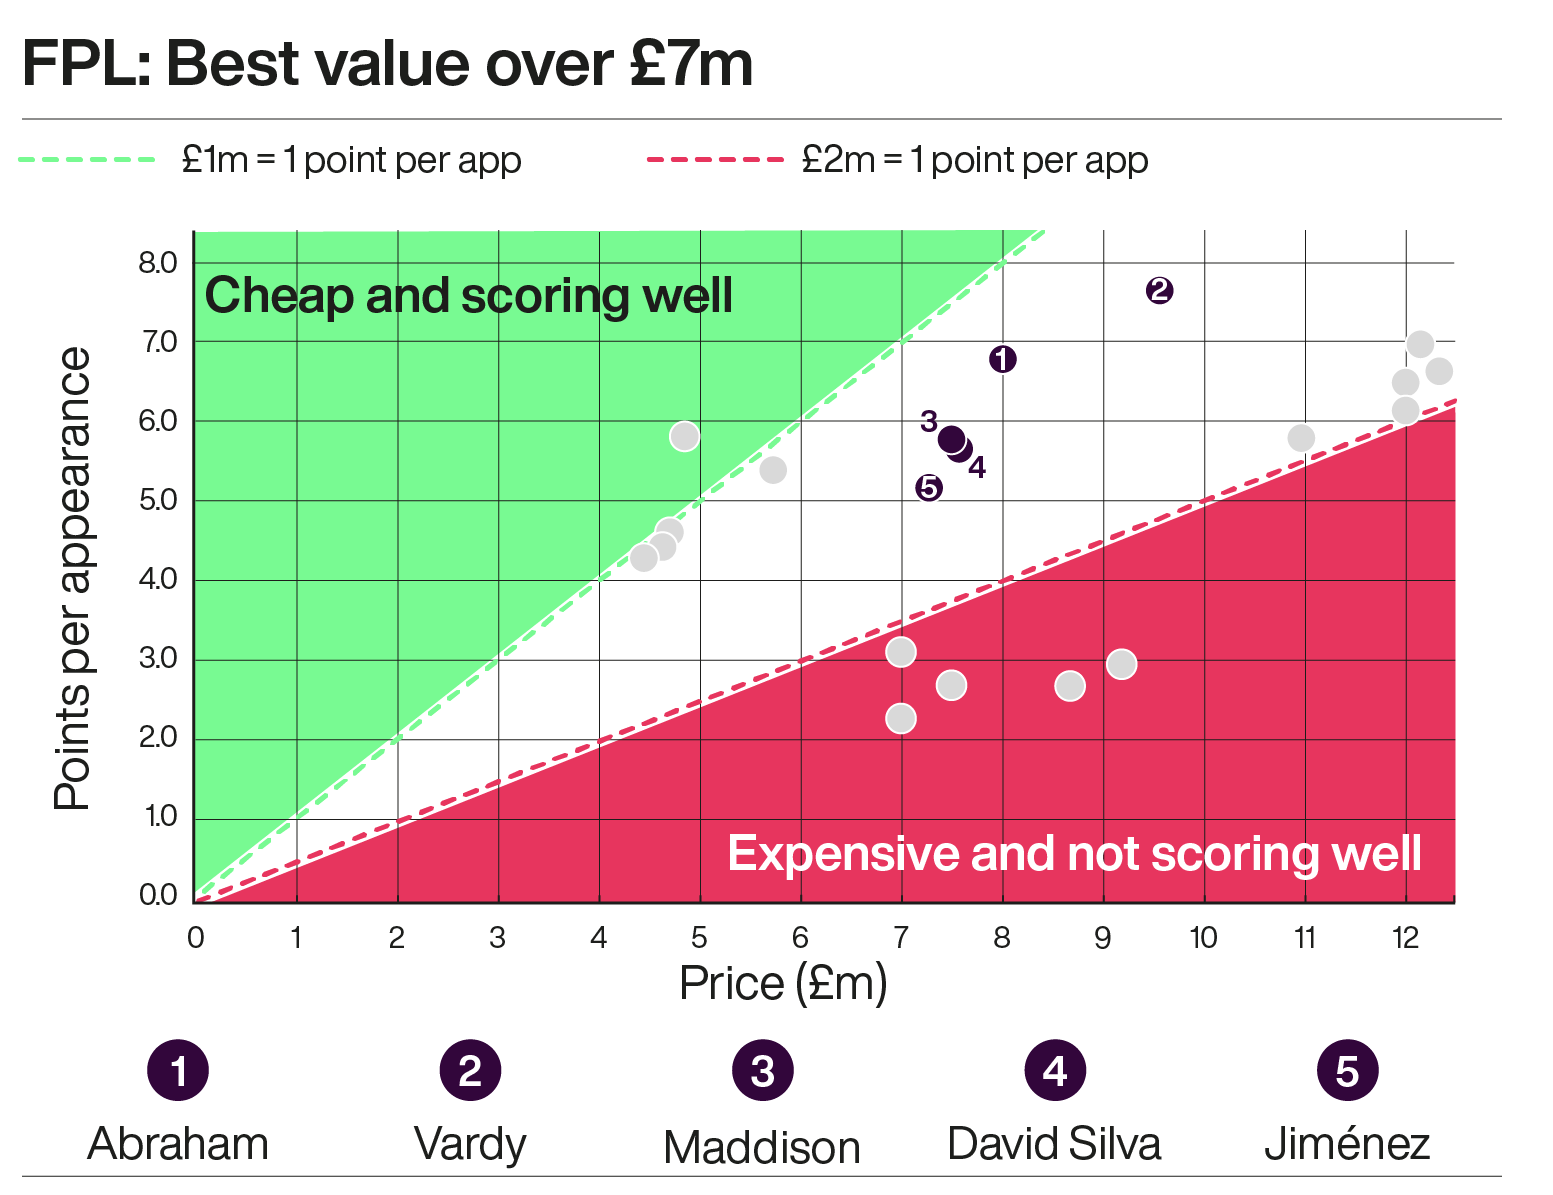 A graph showing the best value Fantasy Premier League footballers over £7m